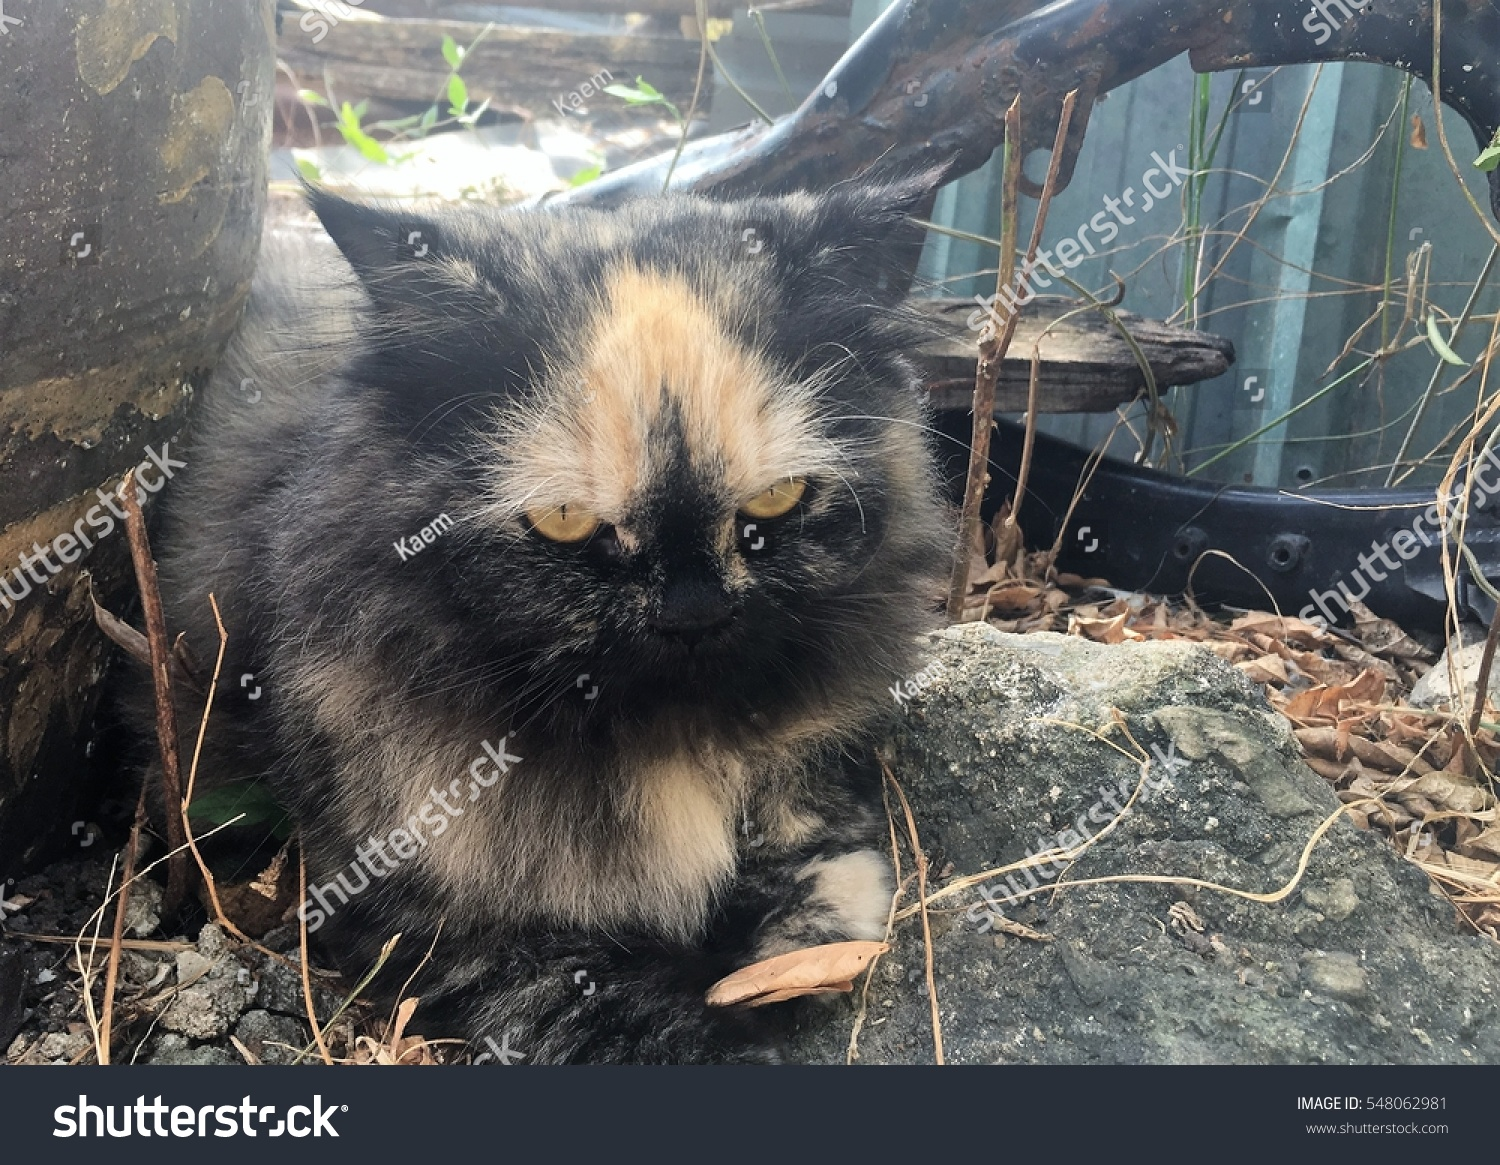 Edit Pictures Free Online - Persian cat | Shutterstock Editor